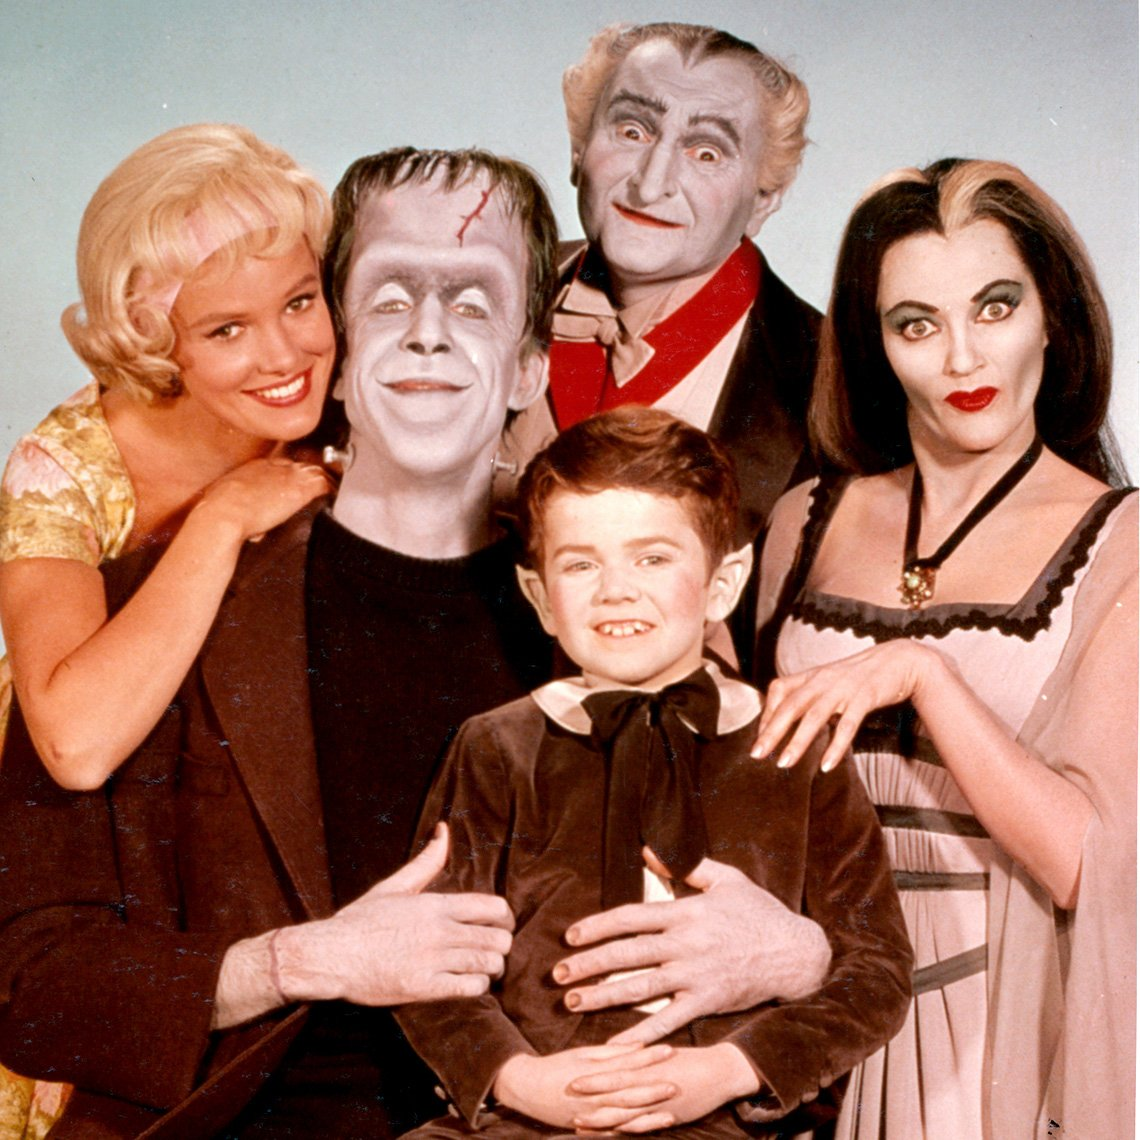 Publicity photo of the stars of 'The Munsters'